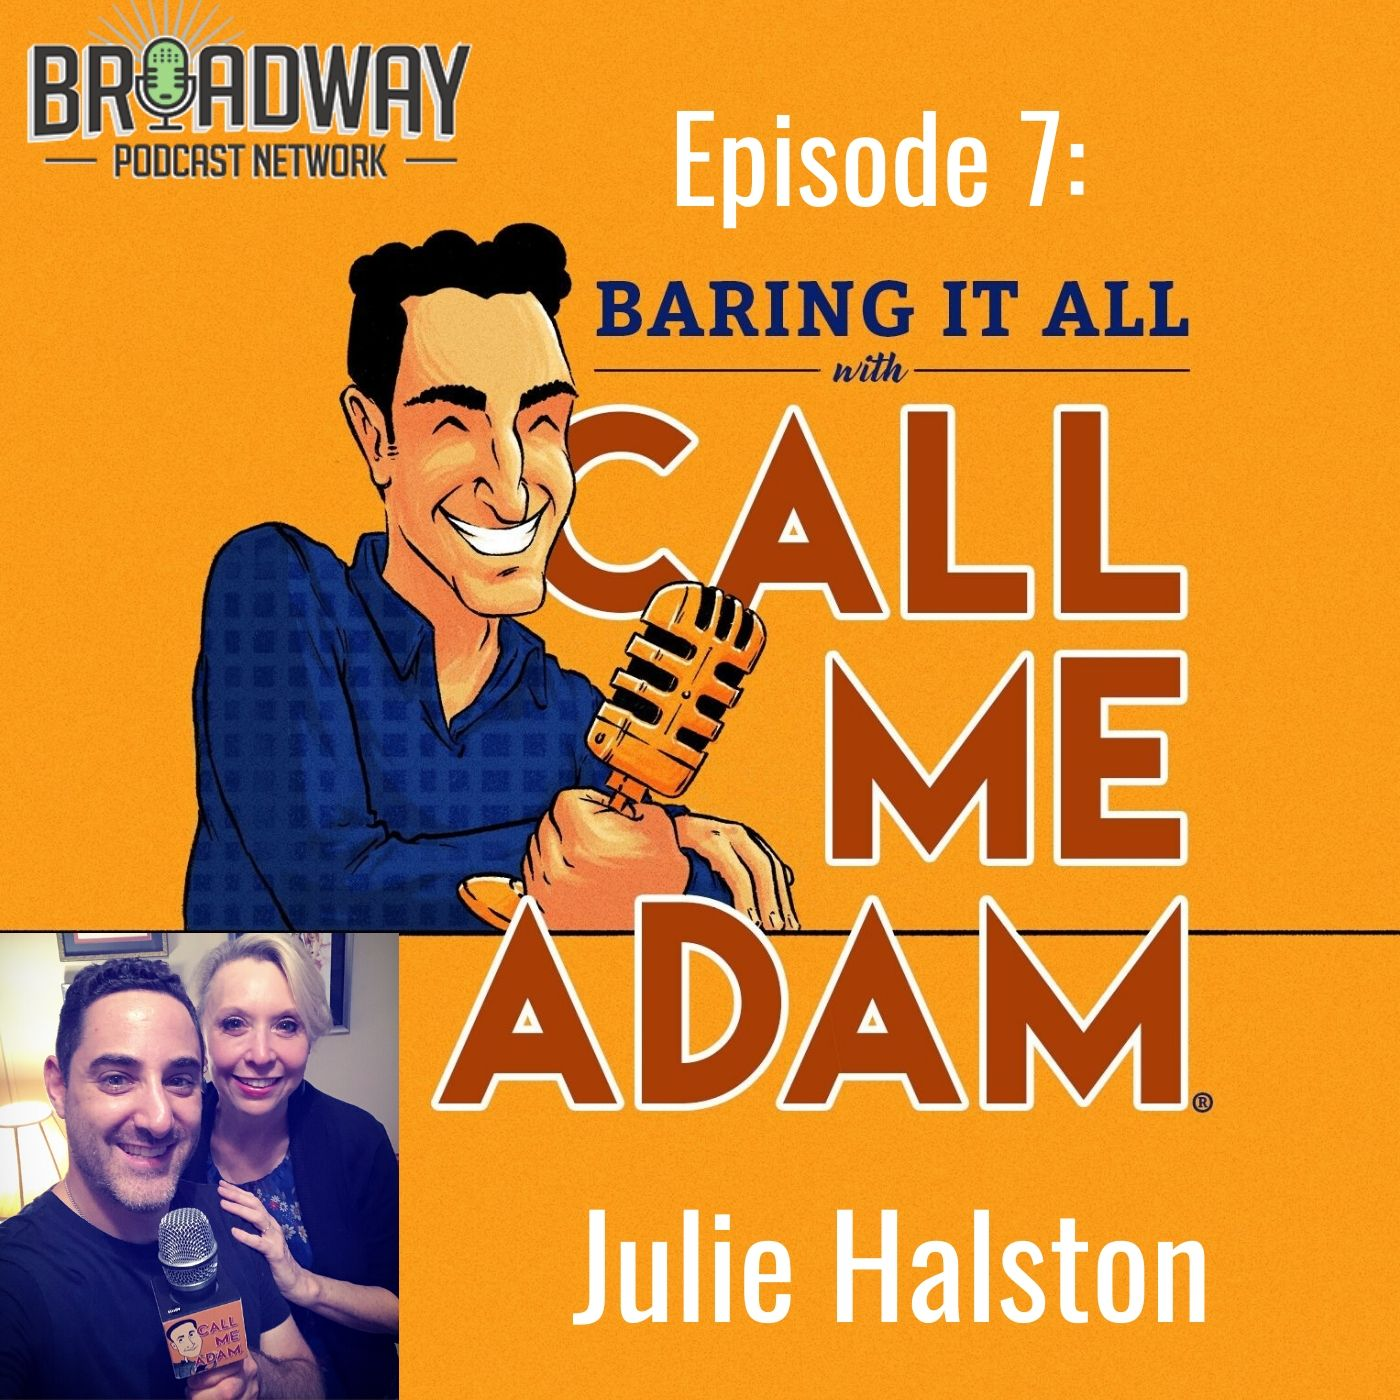 Baring It All With Call Me Adam Ep 7 Julie Halston